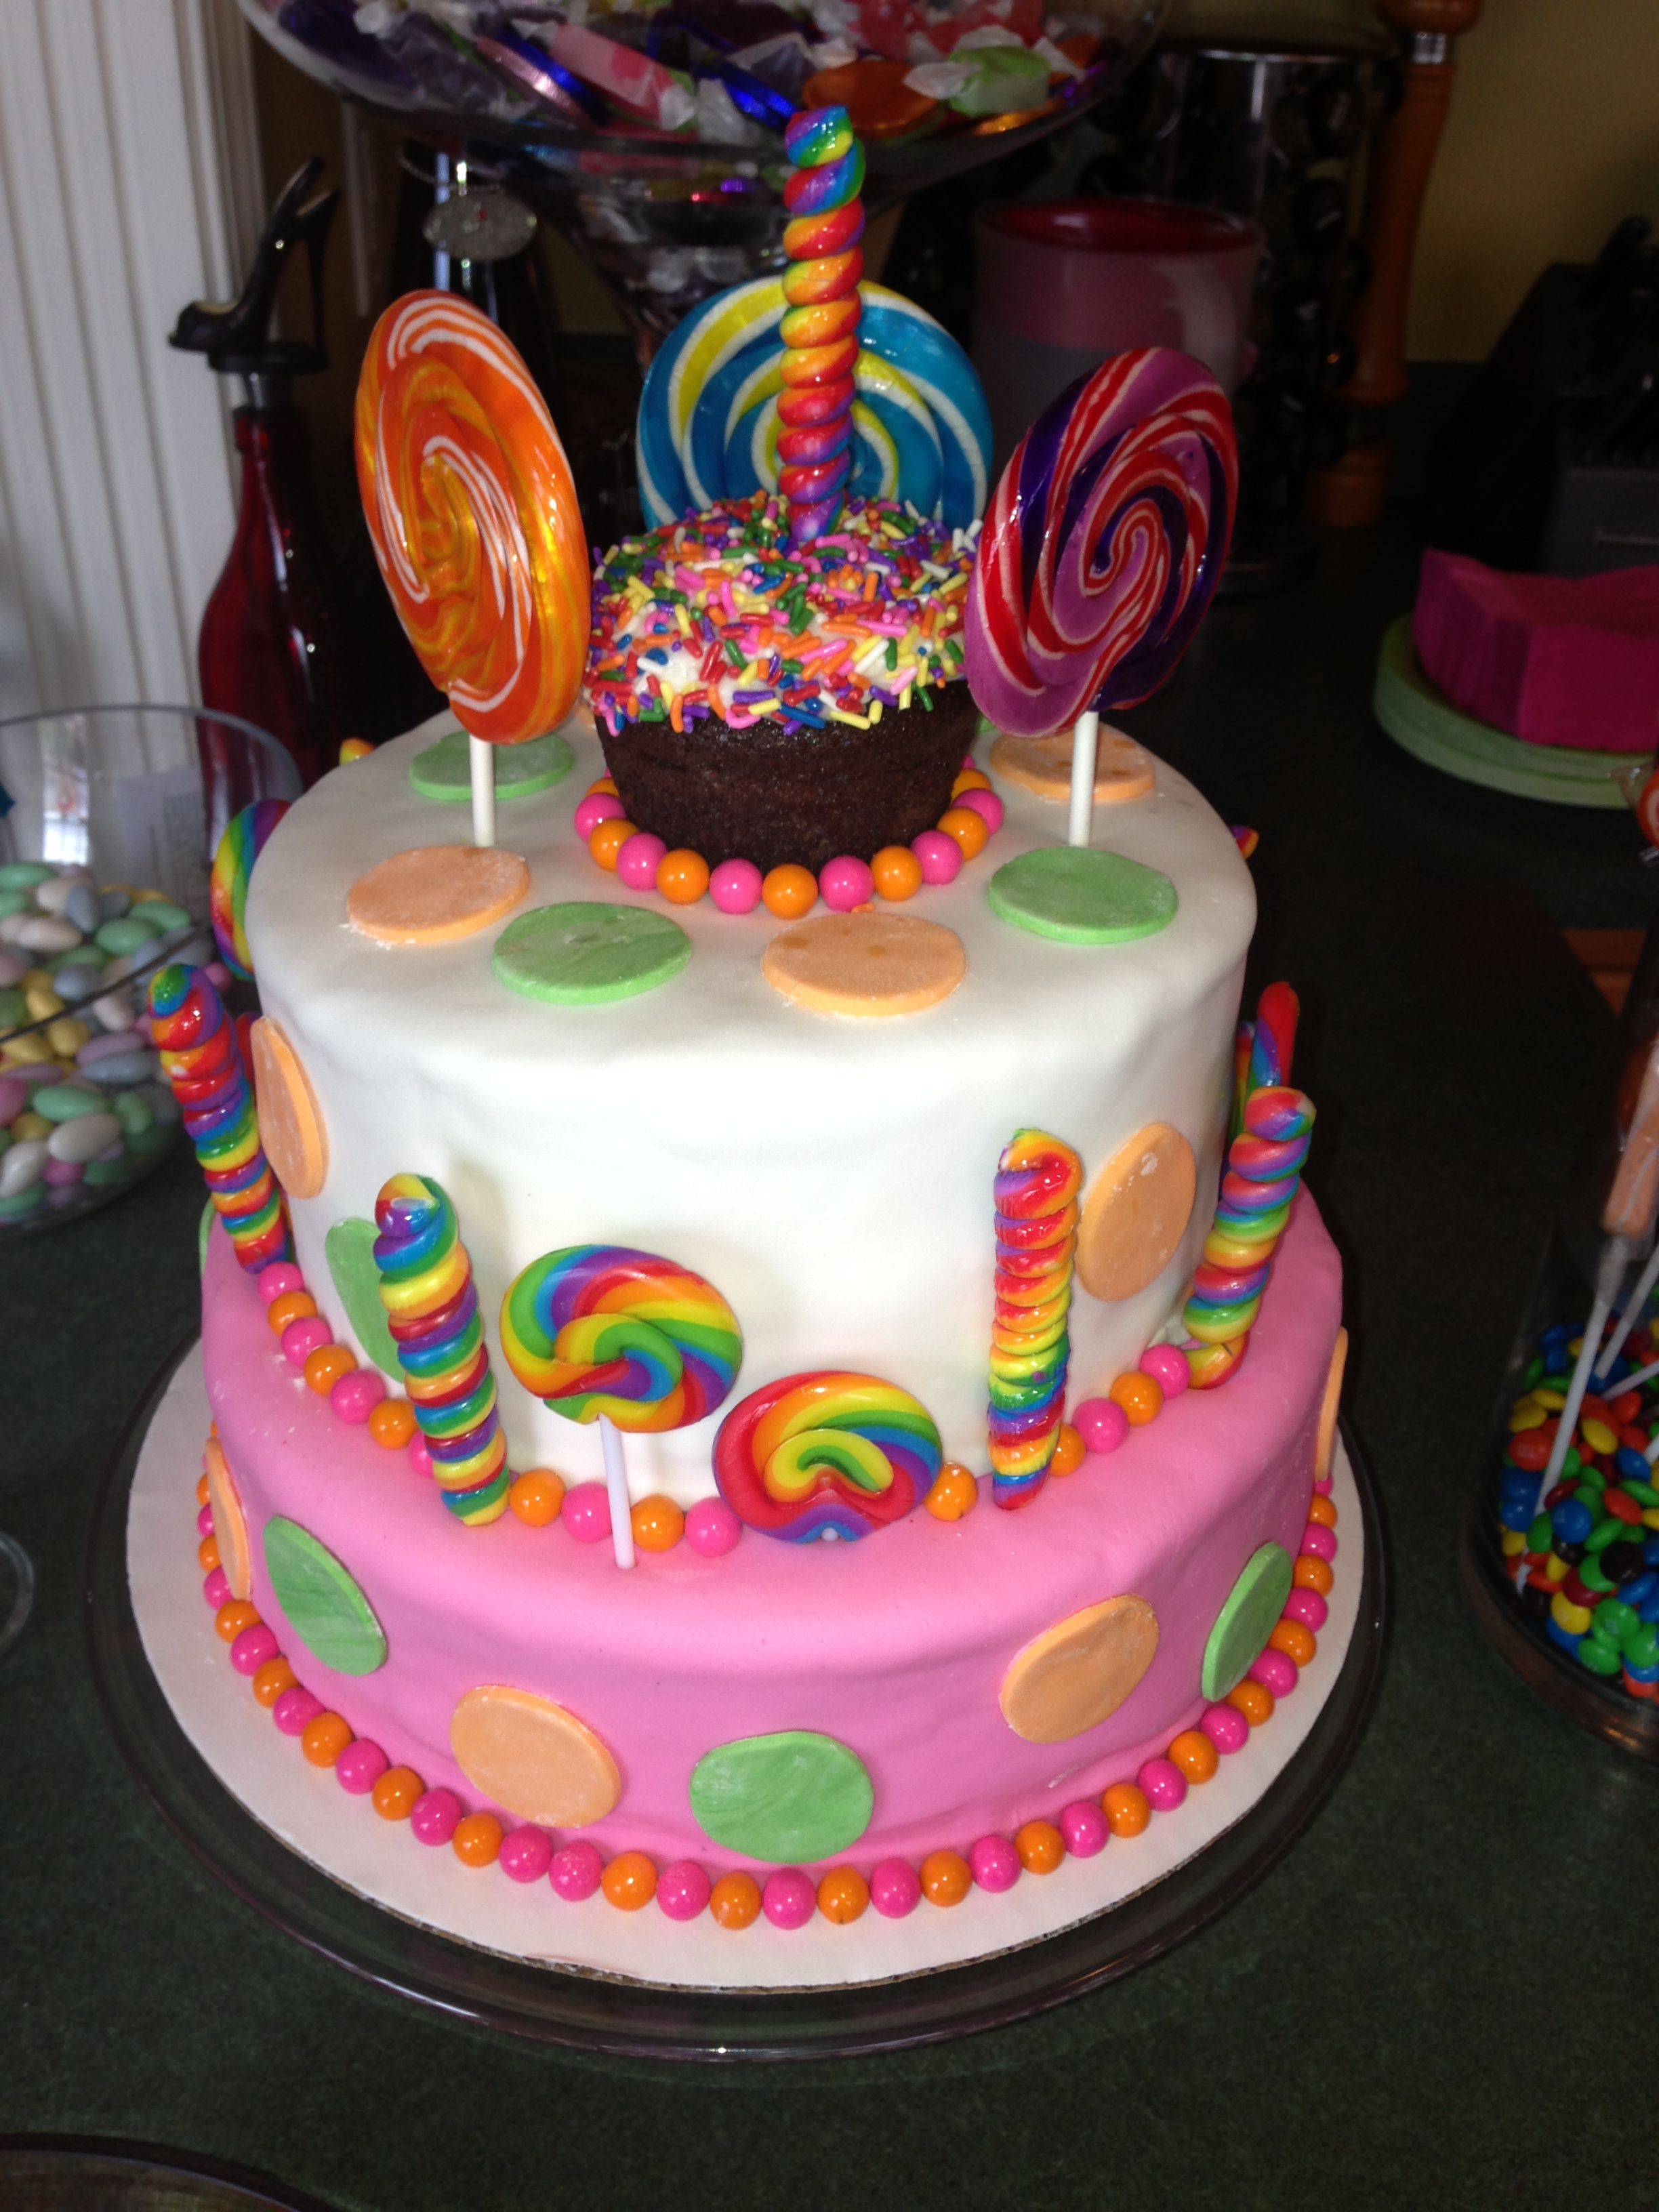 Candy Themed Birthday Cake Staggeringly Delicious Desserts Ive